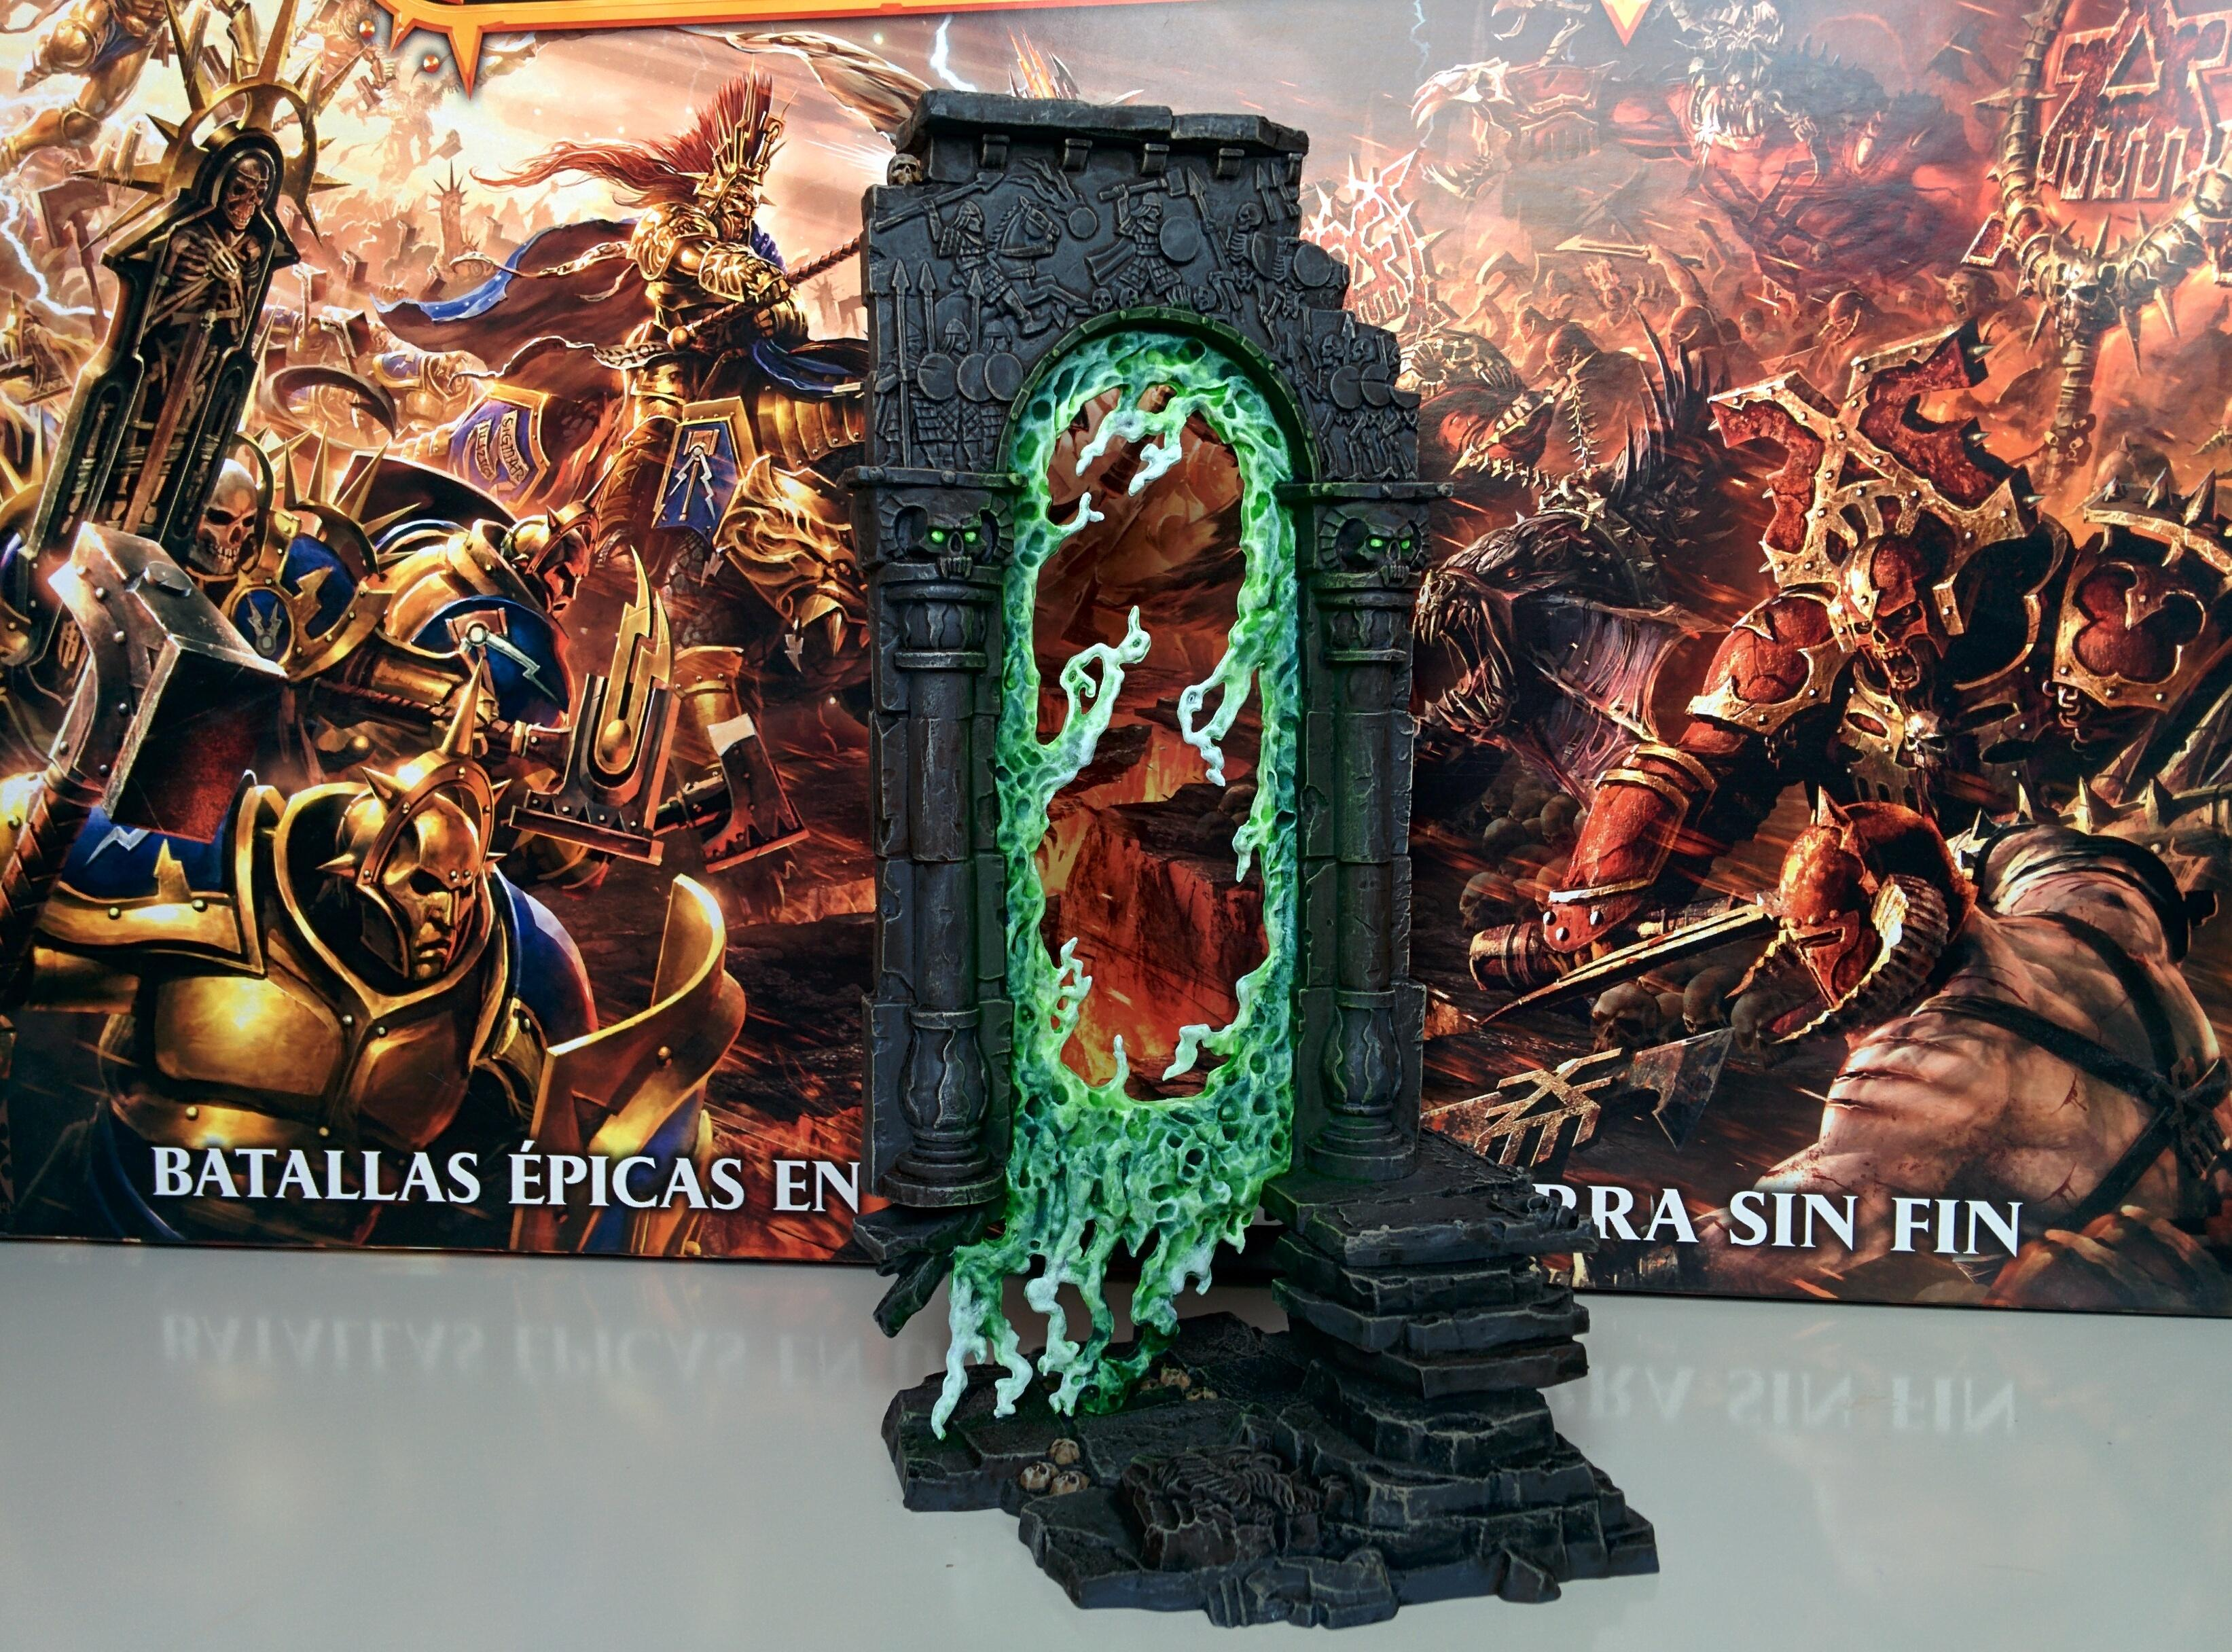 Age Of Sigmar, Citadel, Games Workshop, Miniature, Painting, Realmgate, Terrain, Warhammer Fantasy